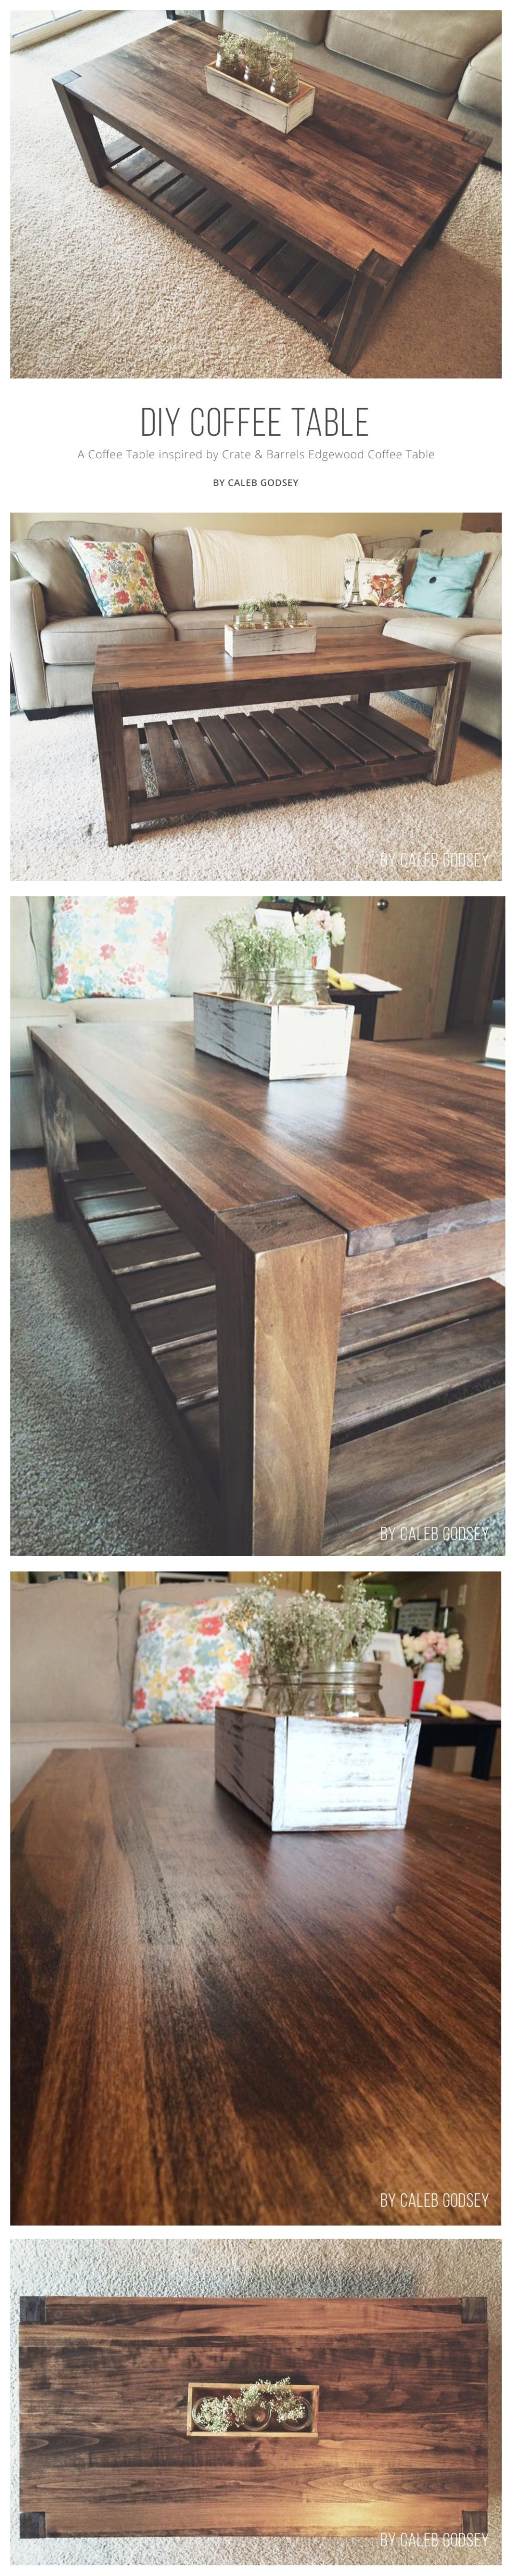 harveys furniture coffee tables lovely a beautiful aspen and pine diy coffee table inspired by crate